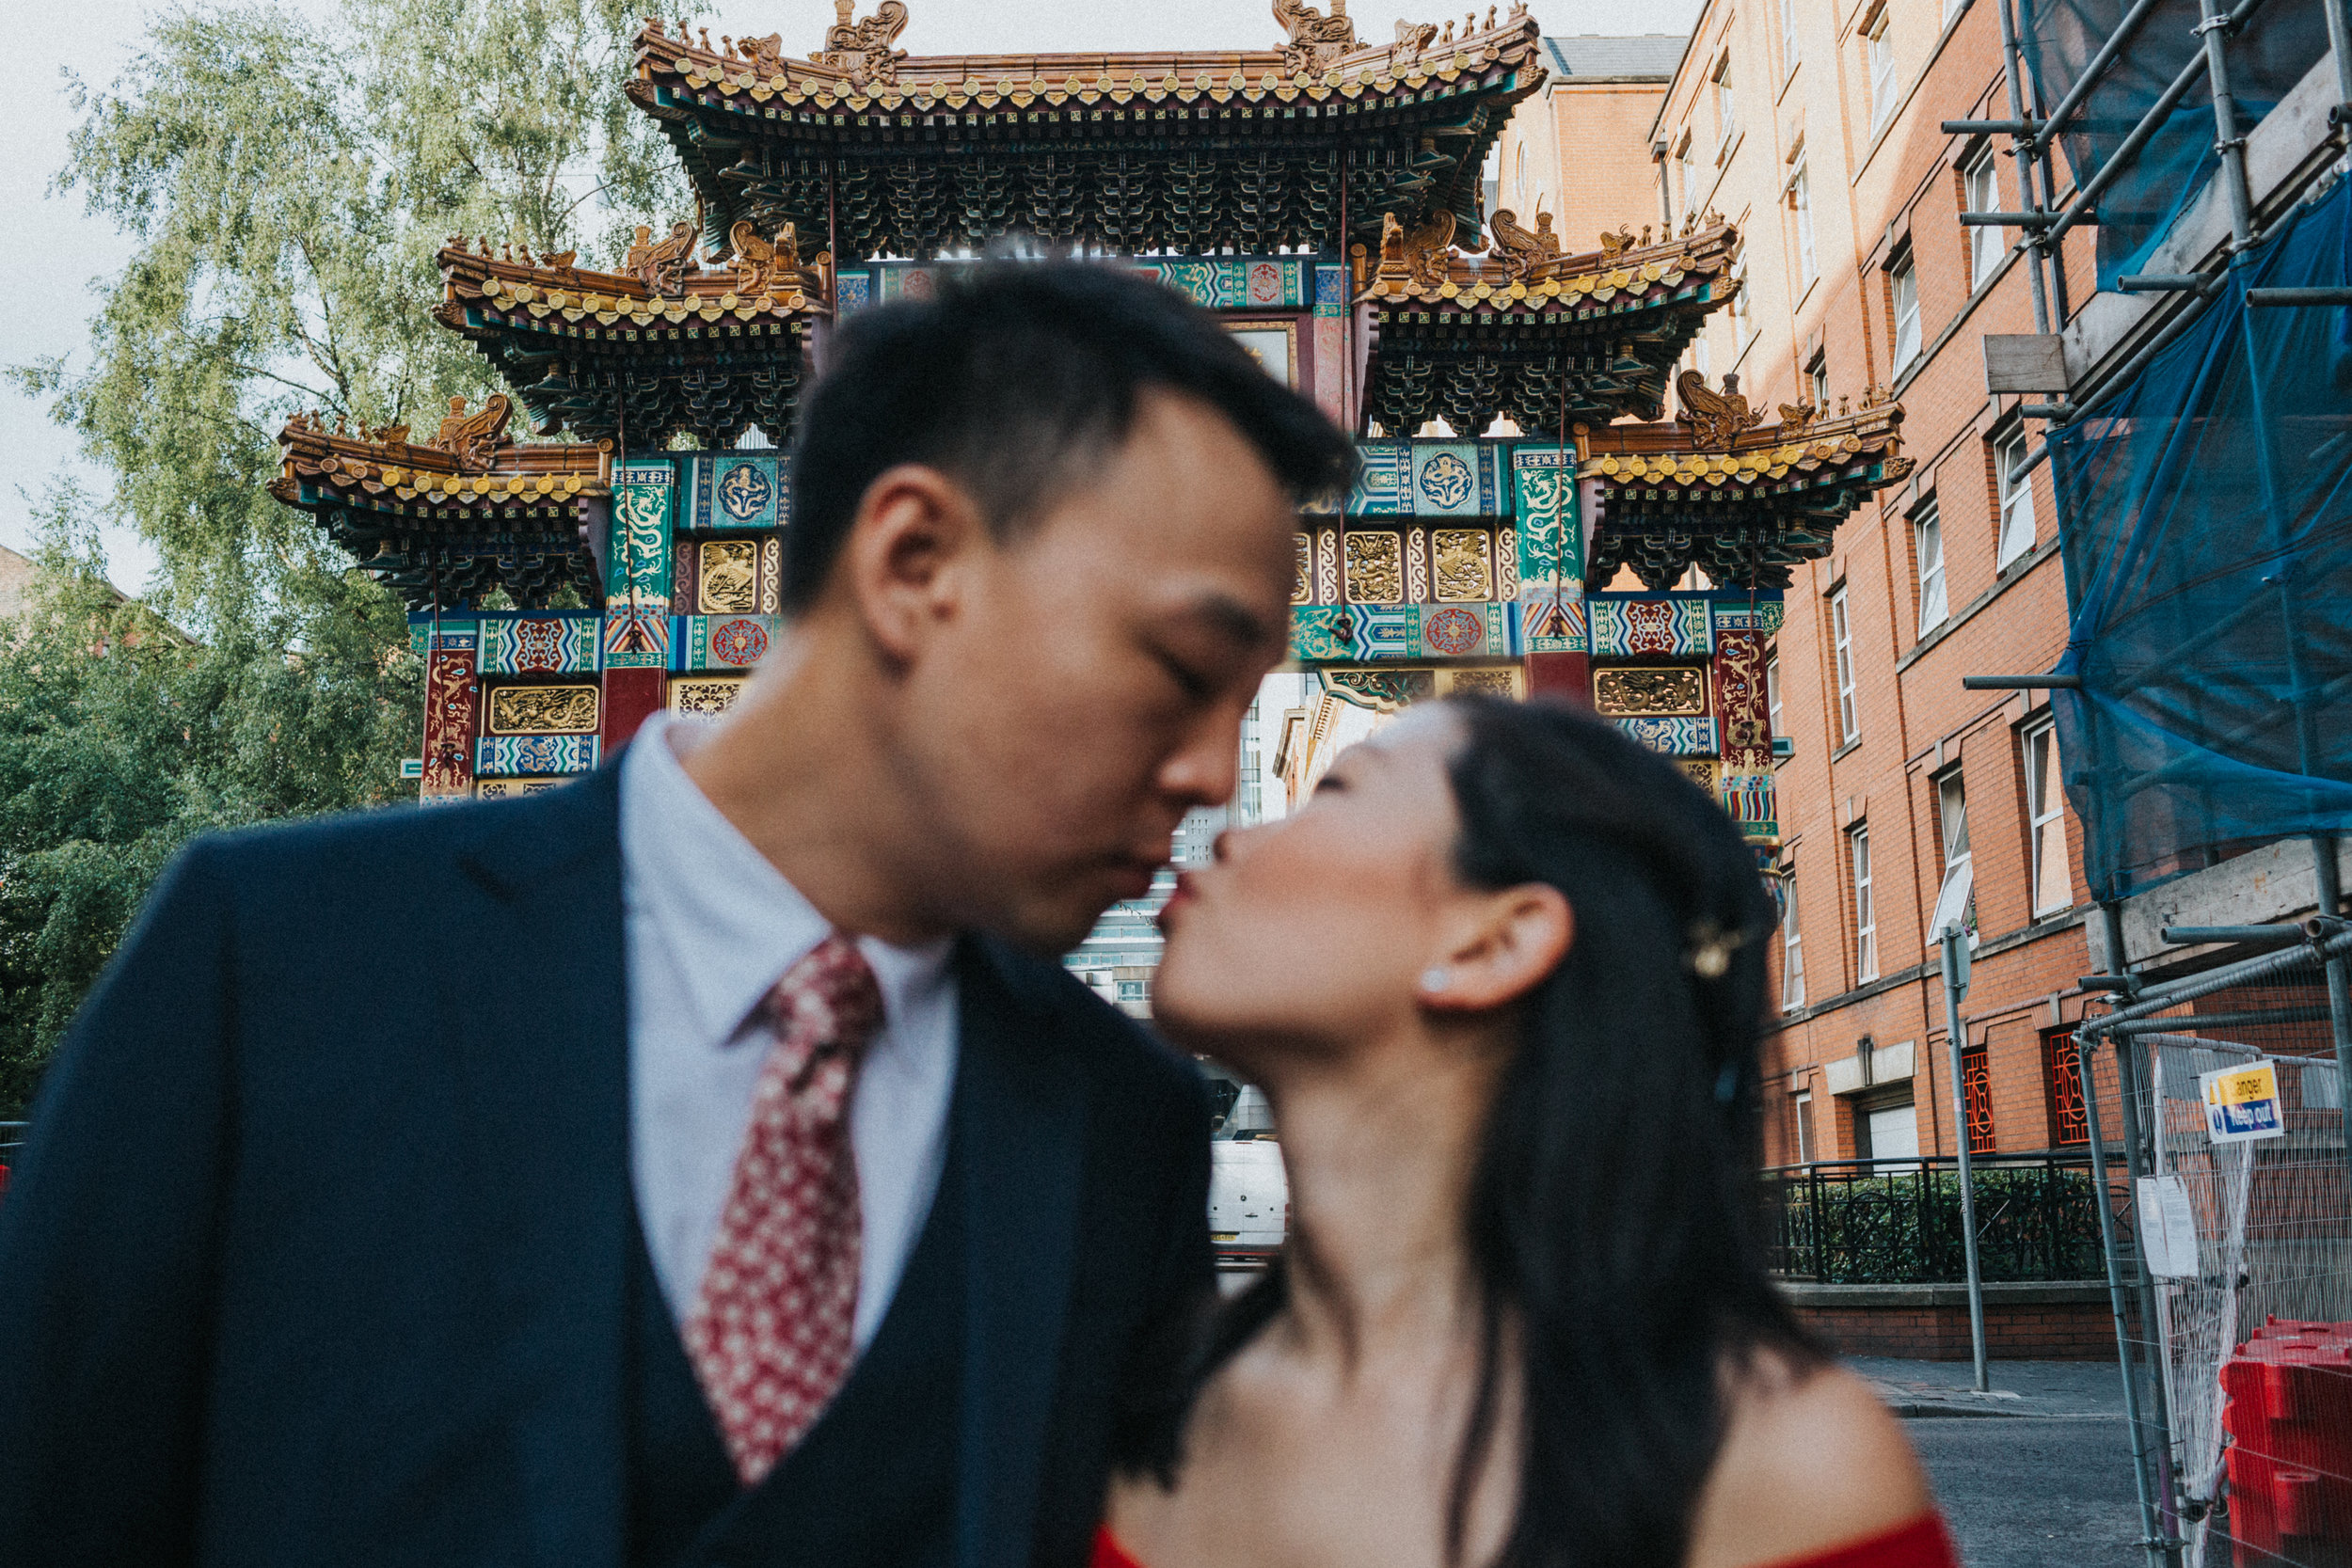 Couple kiss under China Town Archway. Focus on arch.